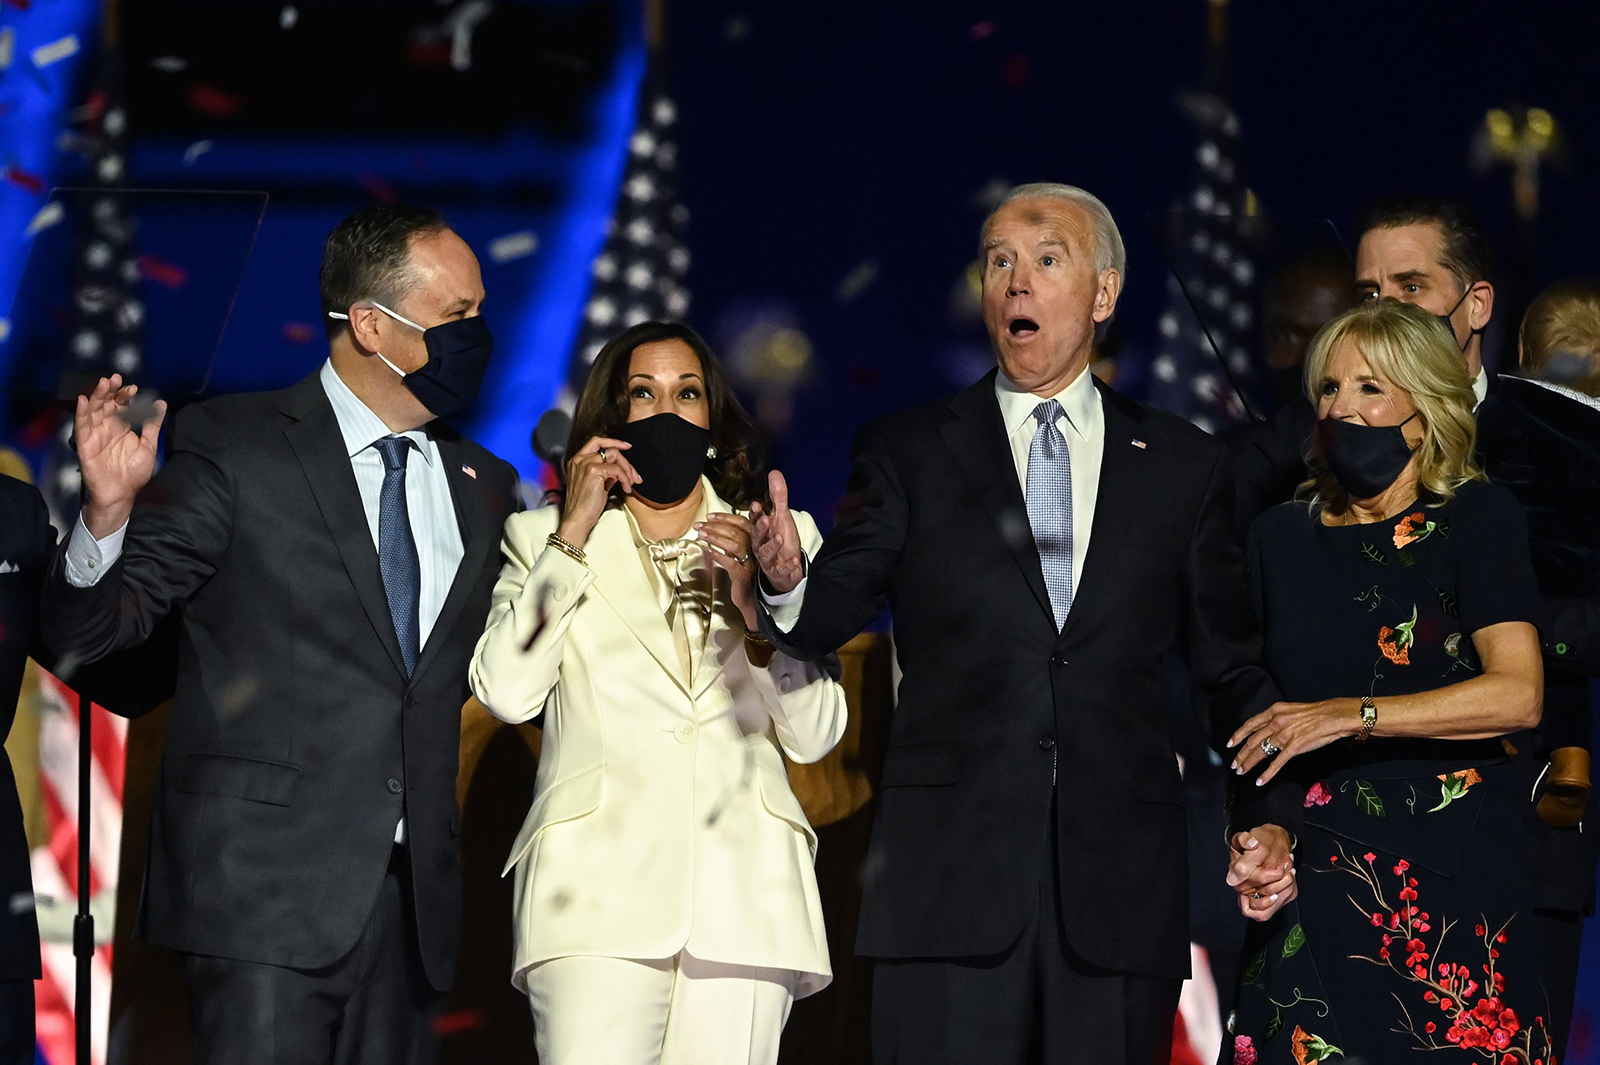 US President-elect Joe Biden and Vice President-elect Kamala Harris react as confetti falls, with Jill Biden and Douglas Emhoff, after delivering remarks in Wilmington, Delaware, on November 7, after being declared the winners of the presidential election.